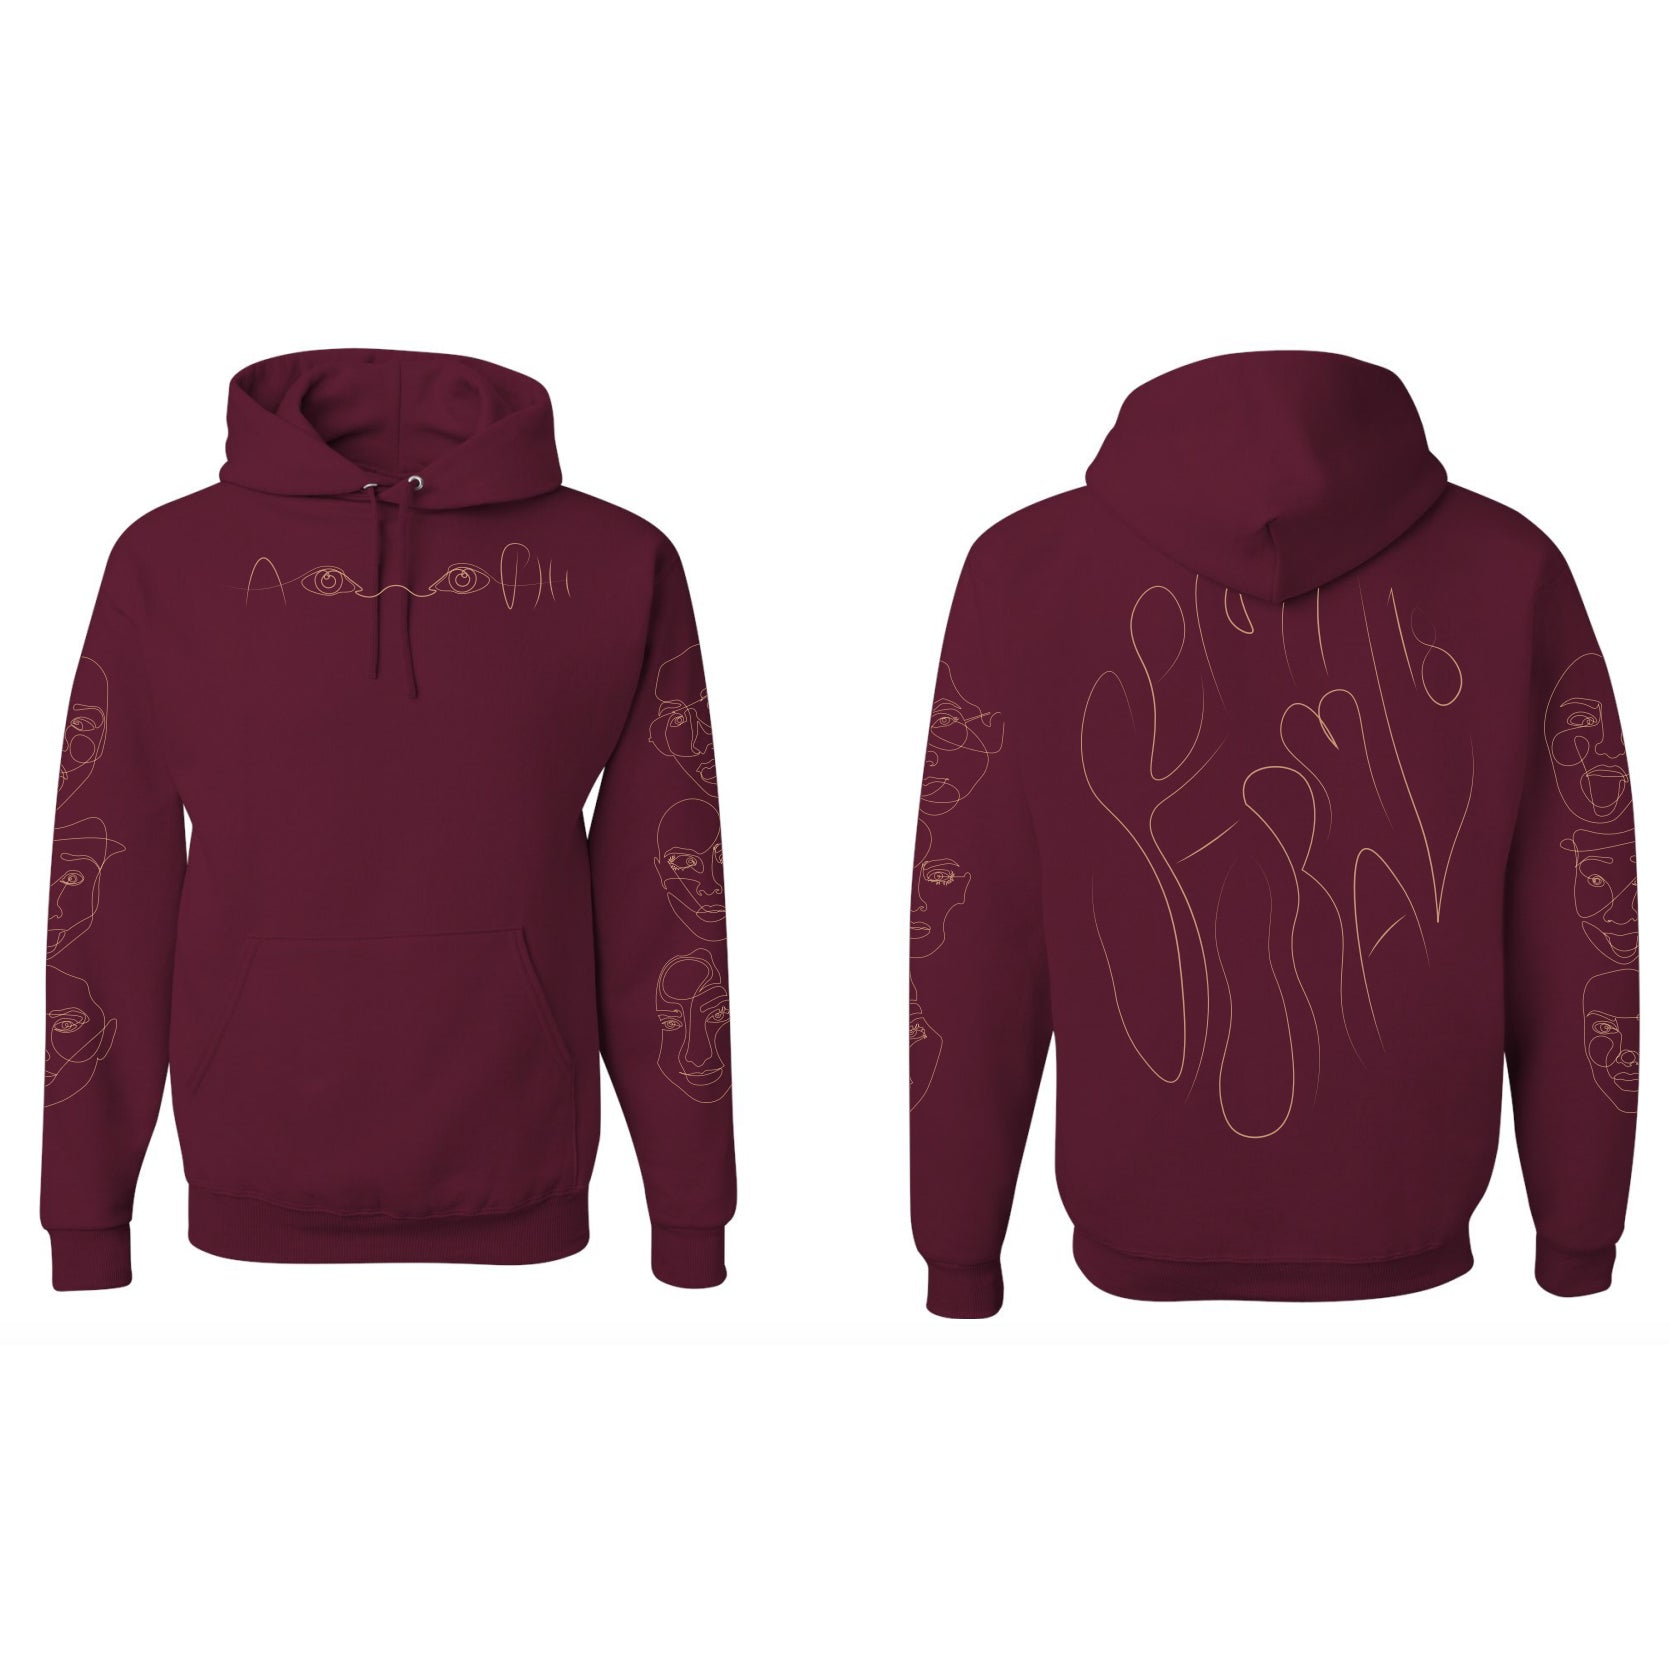 Phi Semi-Formal Hoodies '18